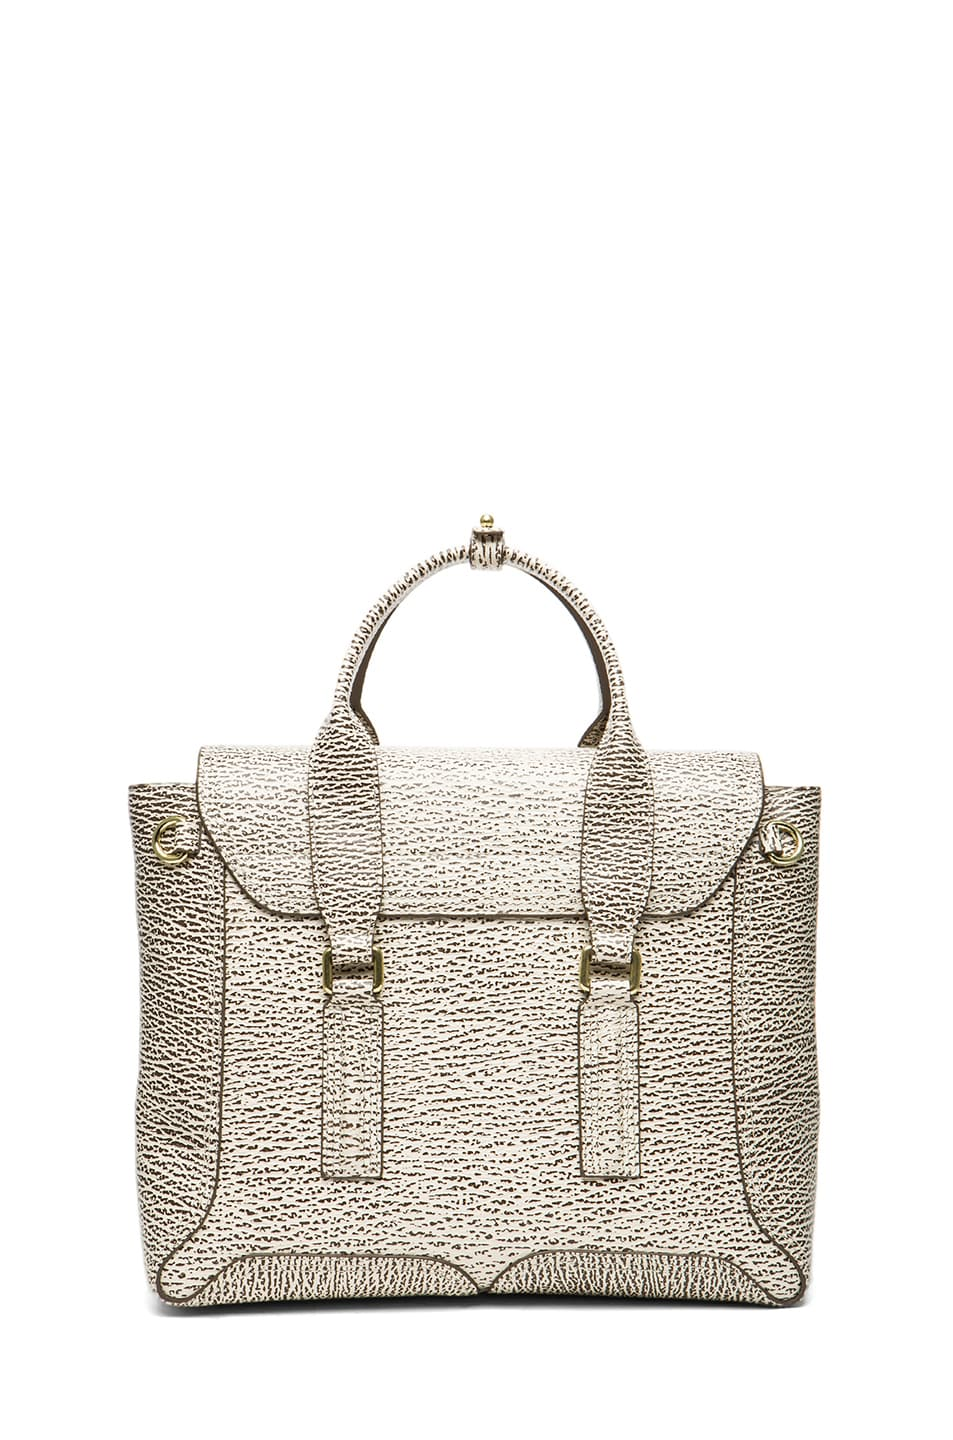 Image 2 of 3.1 phillip lim Medium Pashli Trapeze in Antique White & Military